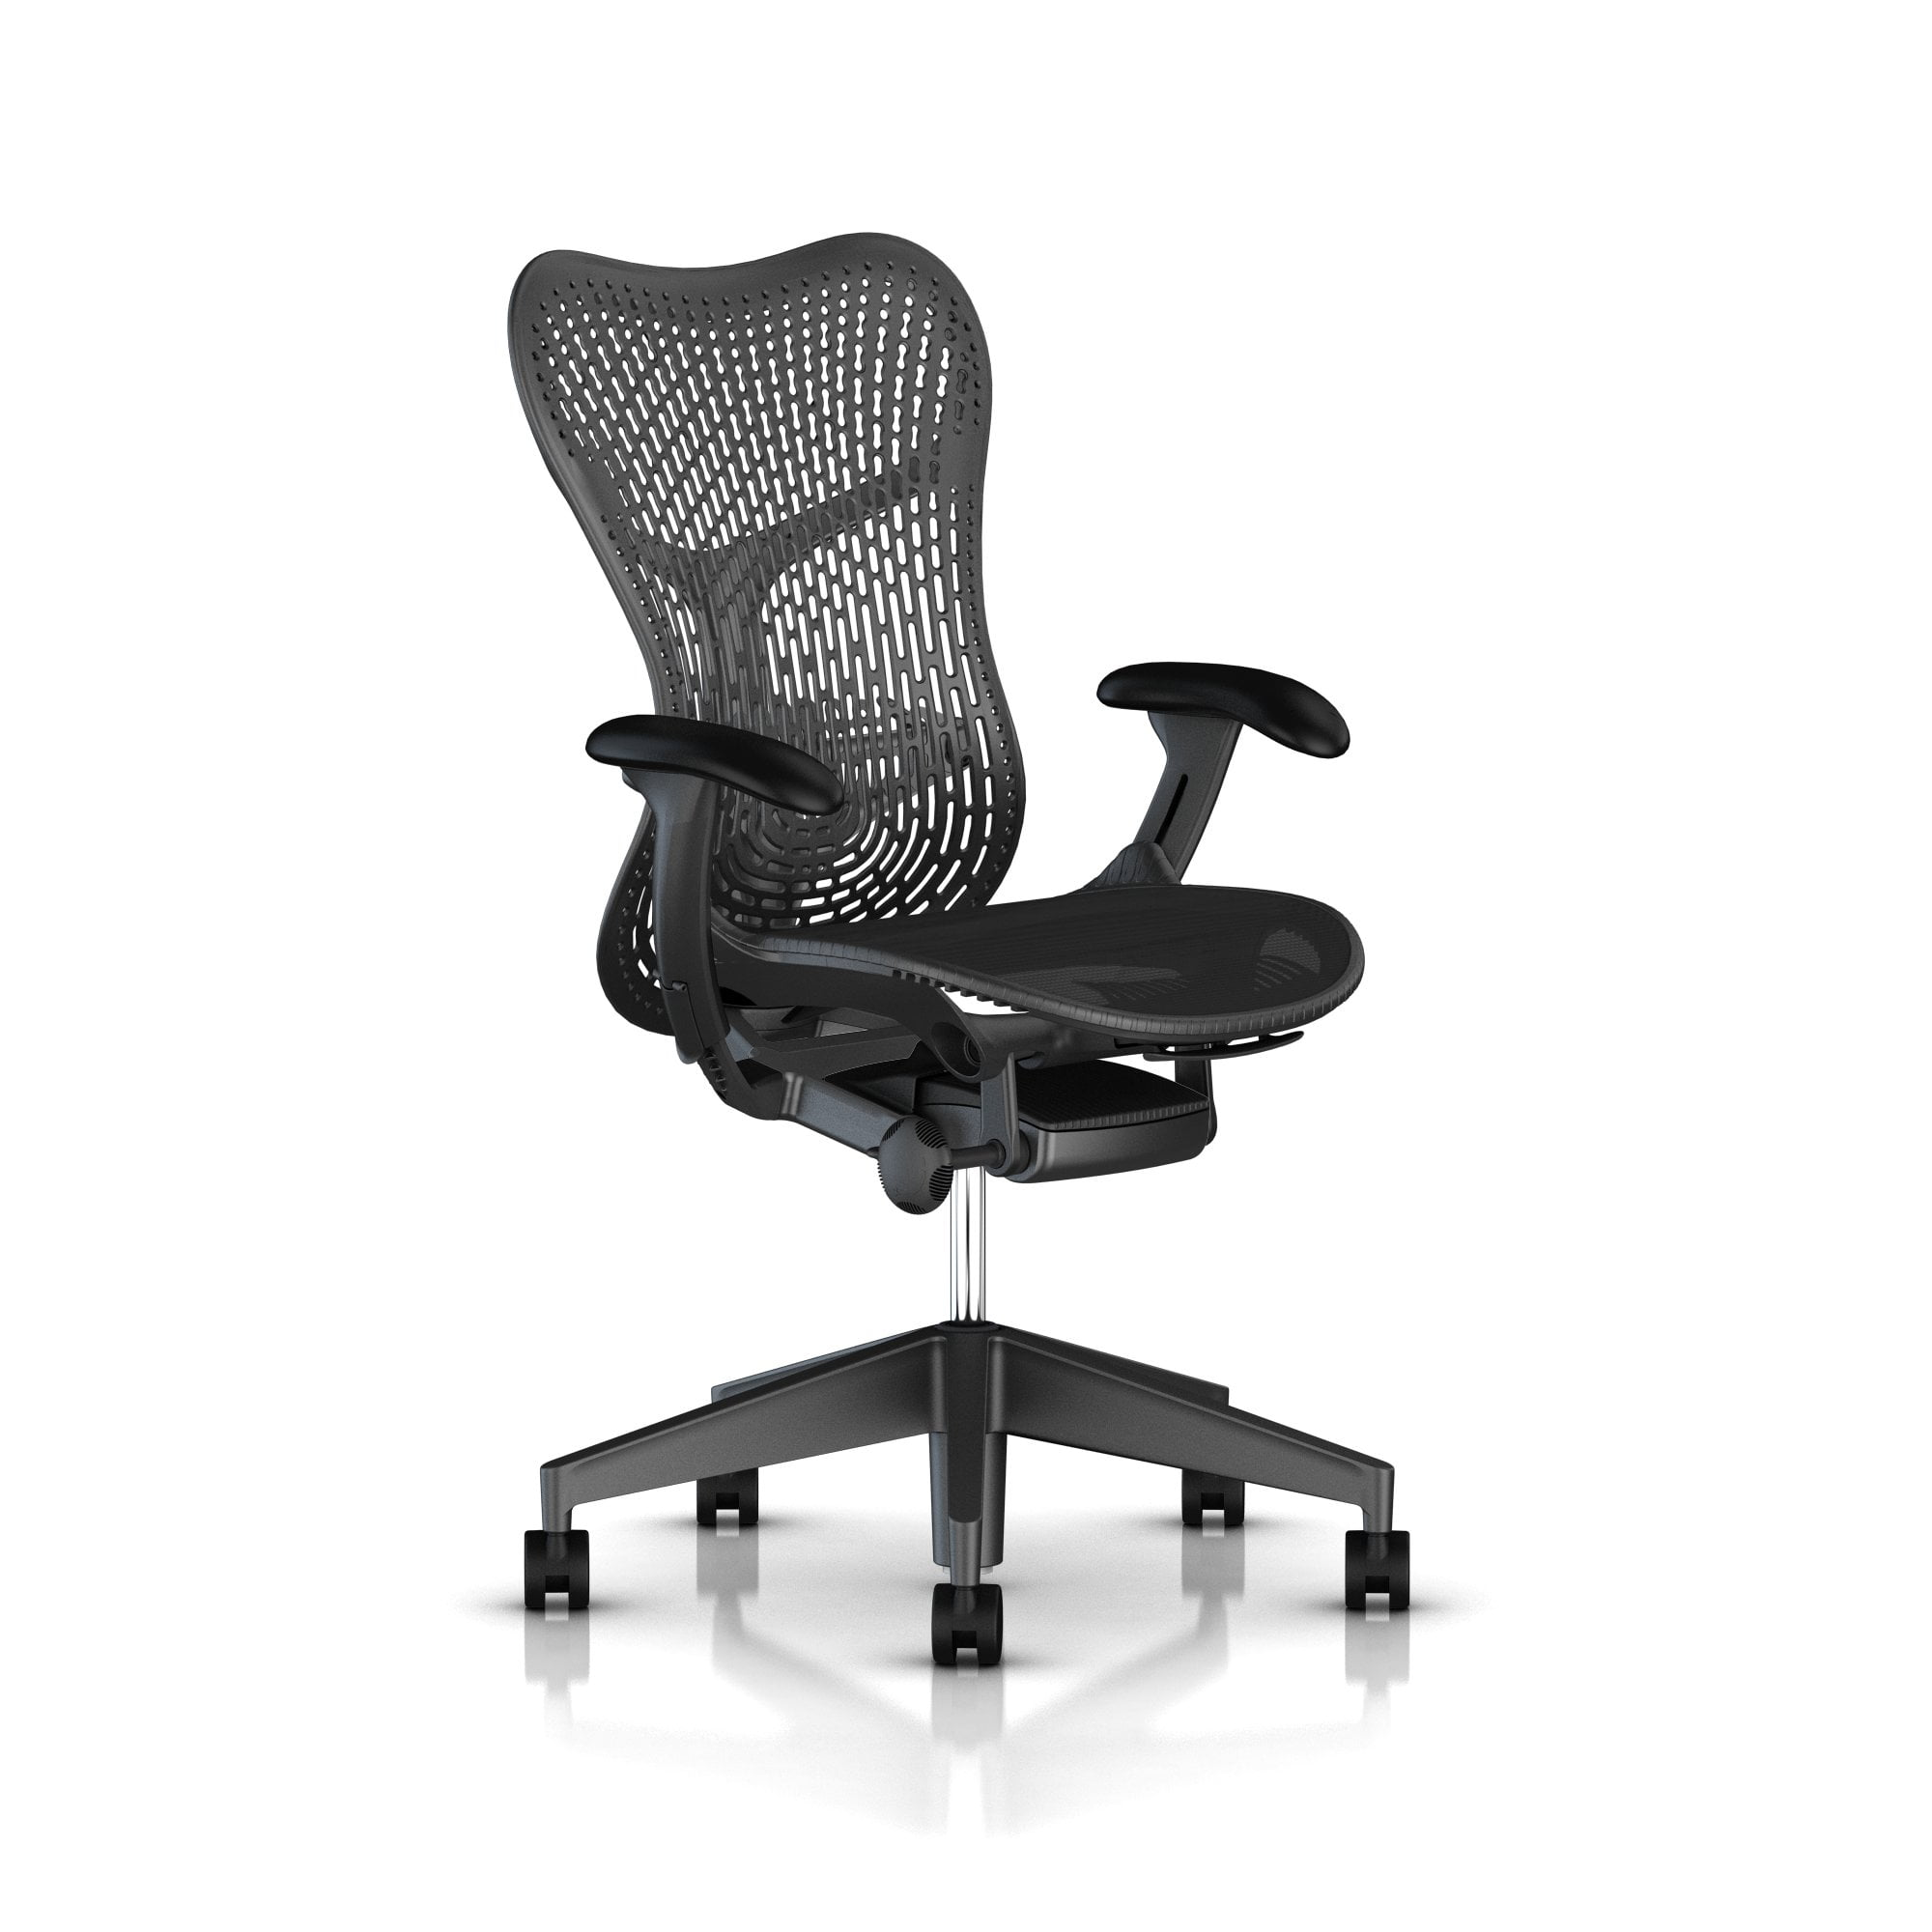 der Mirra 2 Triflex Work Chair